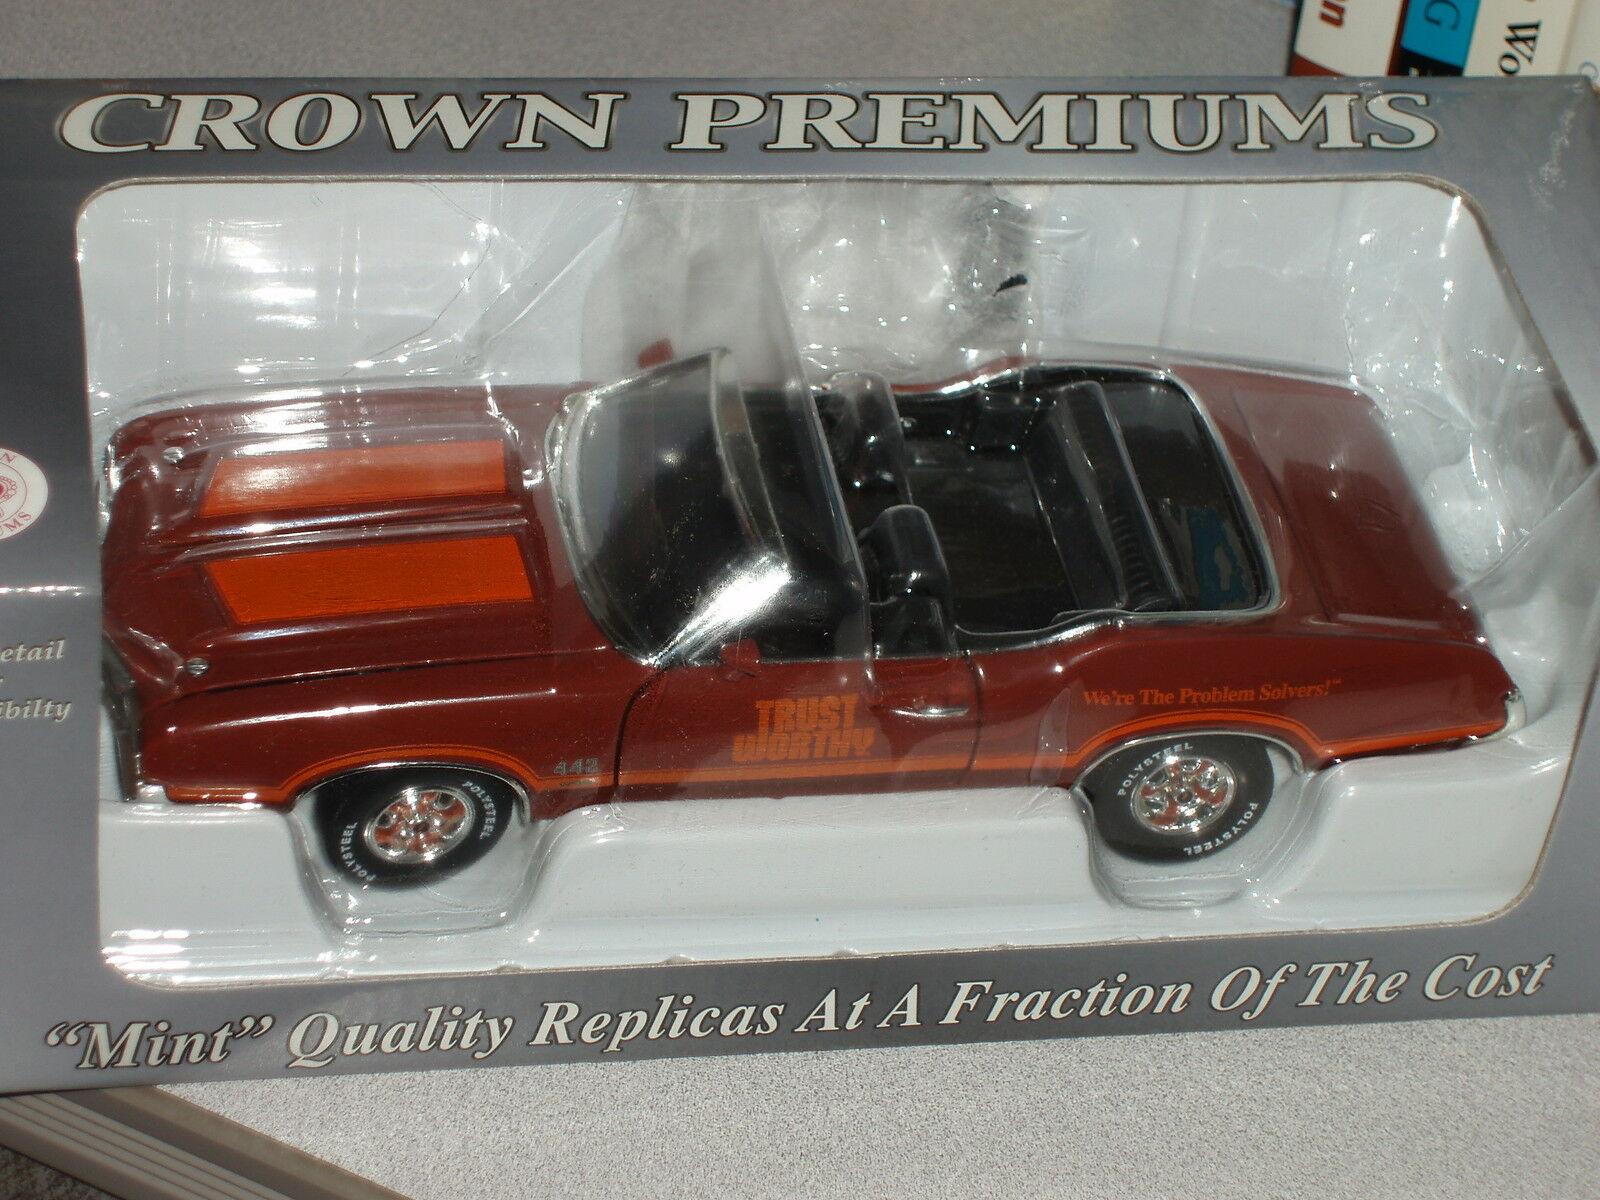 CROWN PREMIUMS 1972 OLDSMOBILE CUTLASS 442 BURGANDY CONV 1/24 TRUST WORTHY